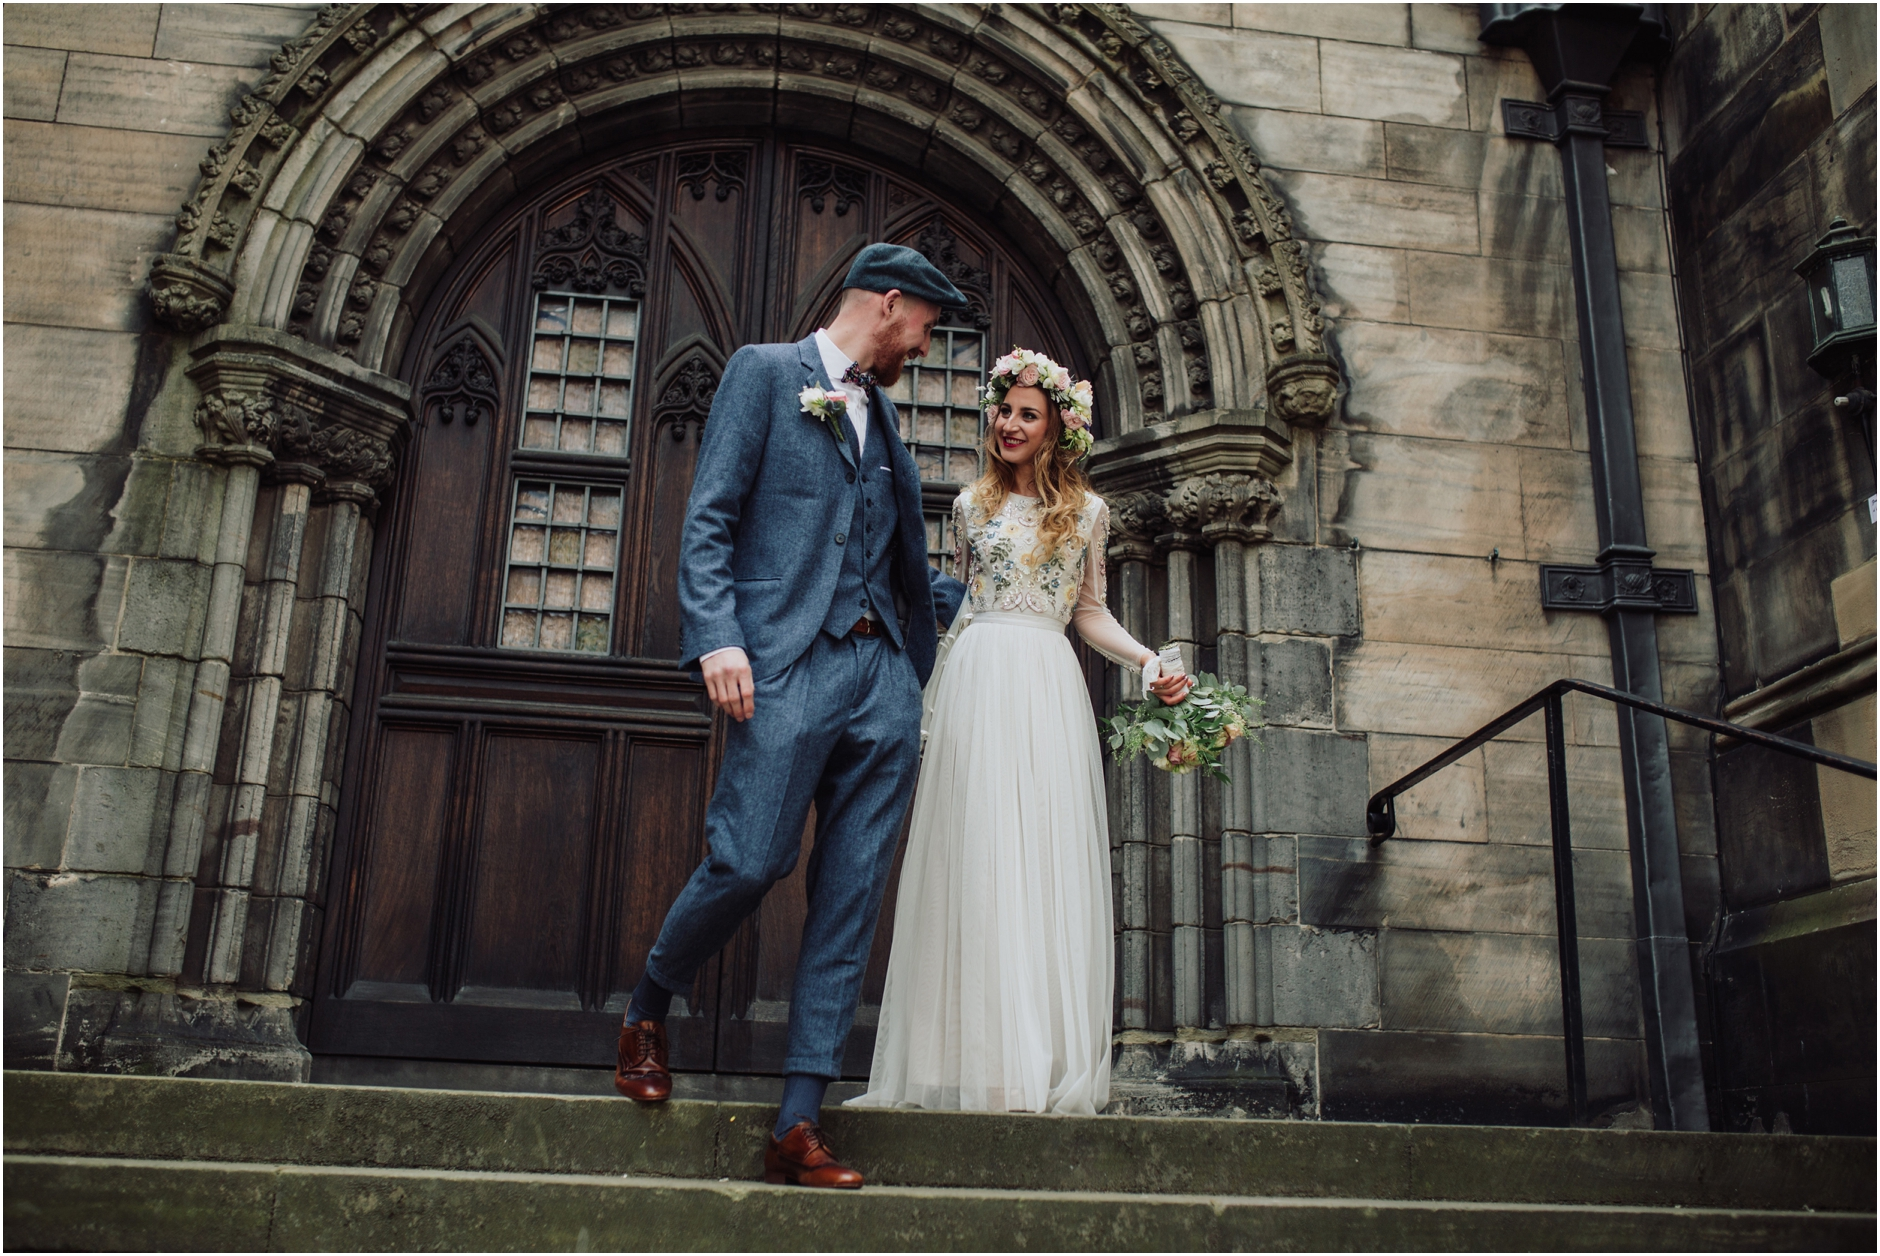 lothian-chambers-edinburgh-wedding-alternative-scottish-photographer-044